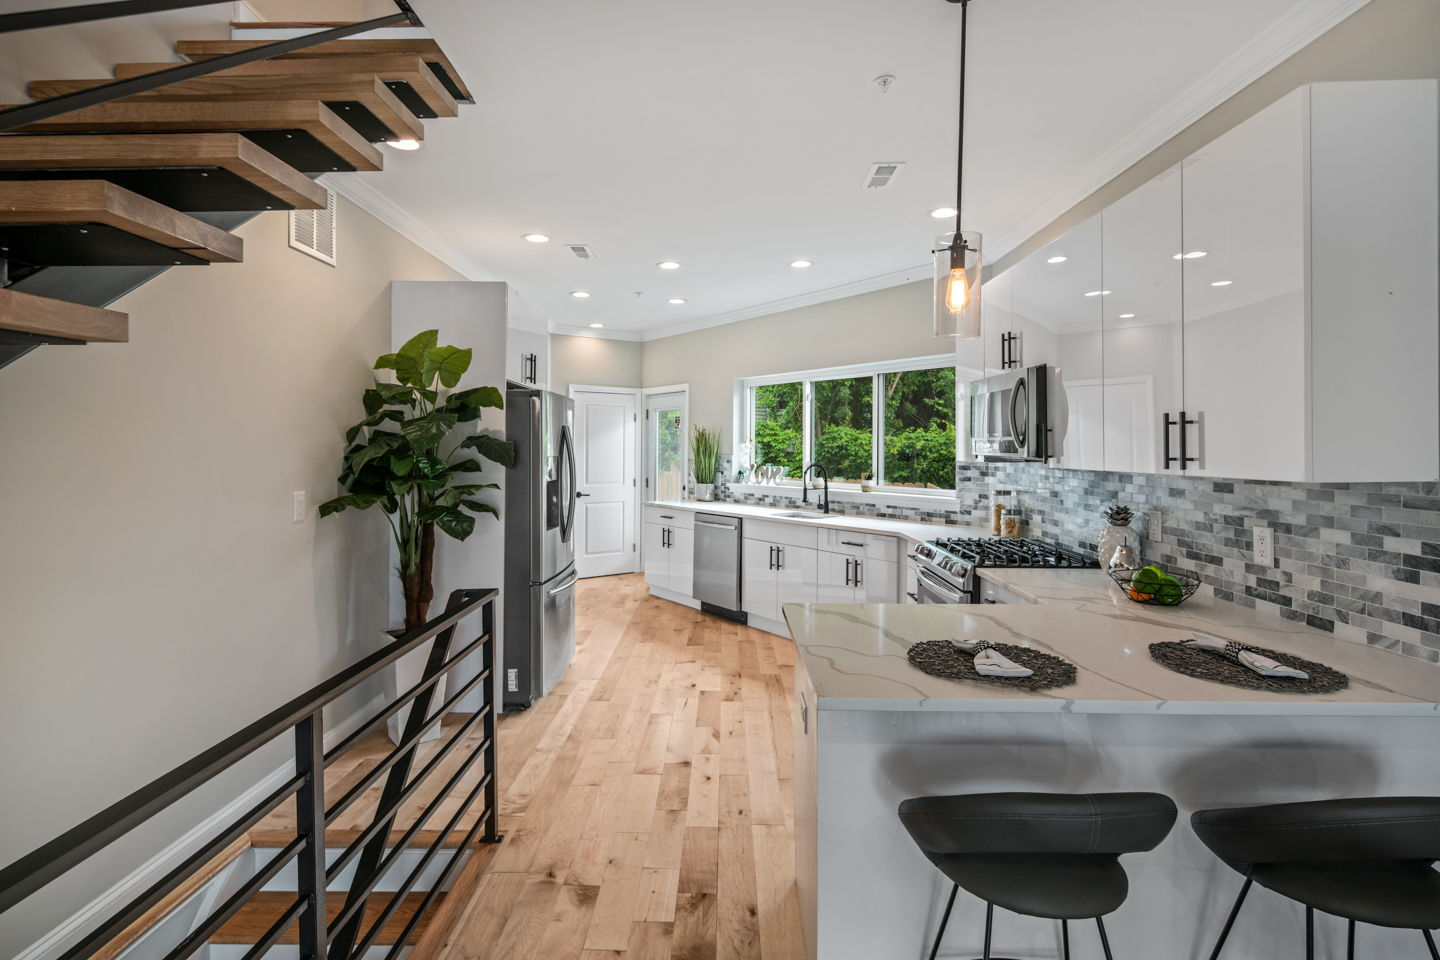 Interior Design vs. Staging: What Are the Differences?